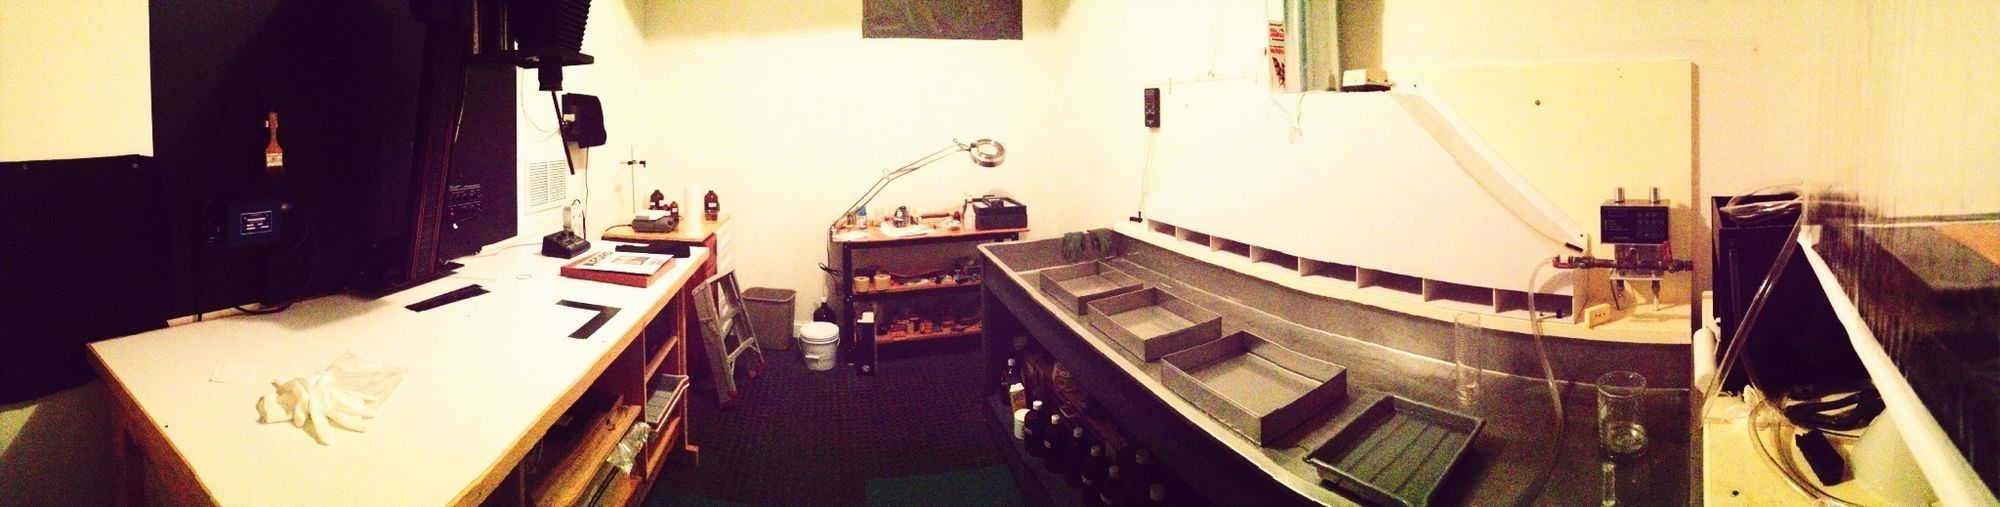 in the Darkroom Real Photography The Lab